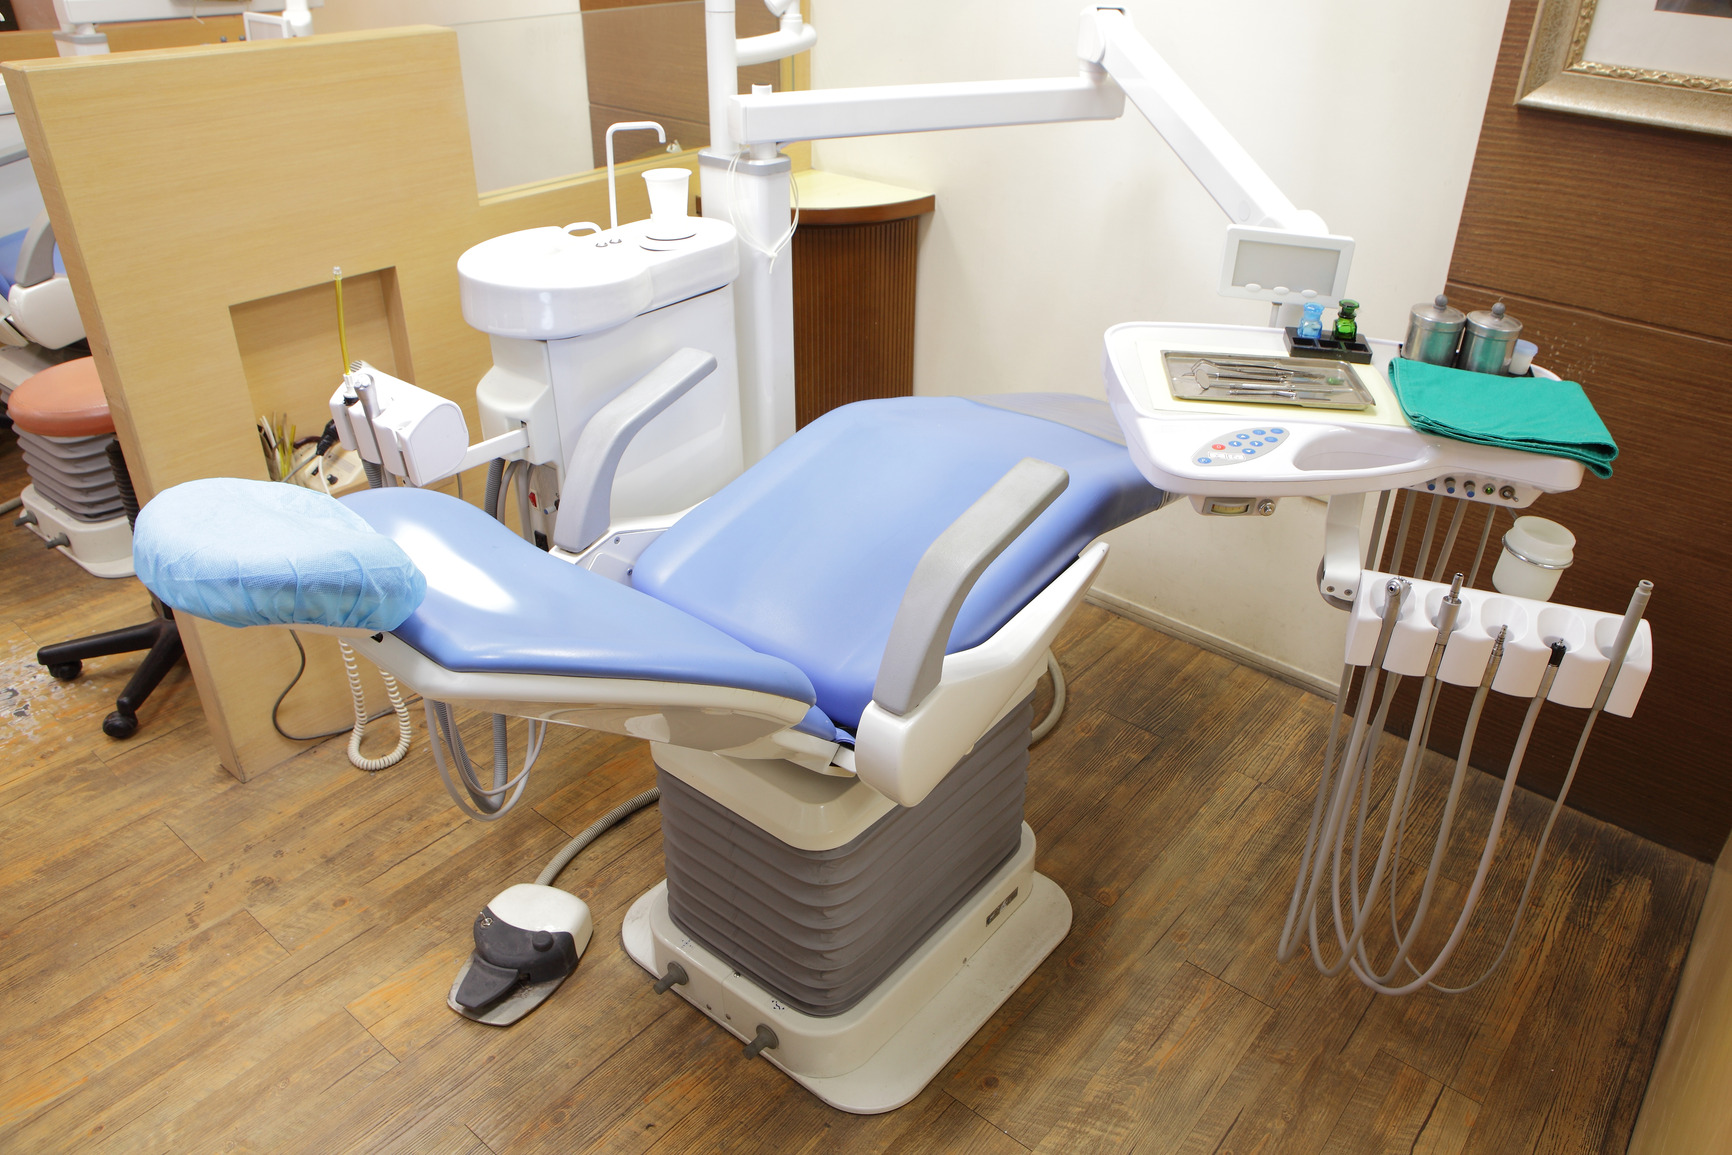 Dental office, equipment, include chair, water, drill etc.